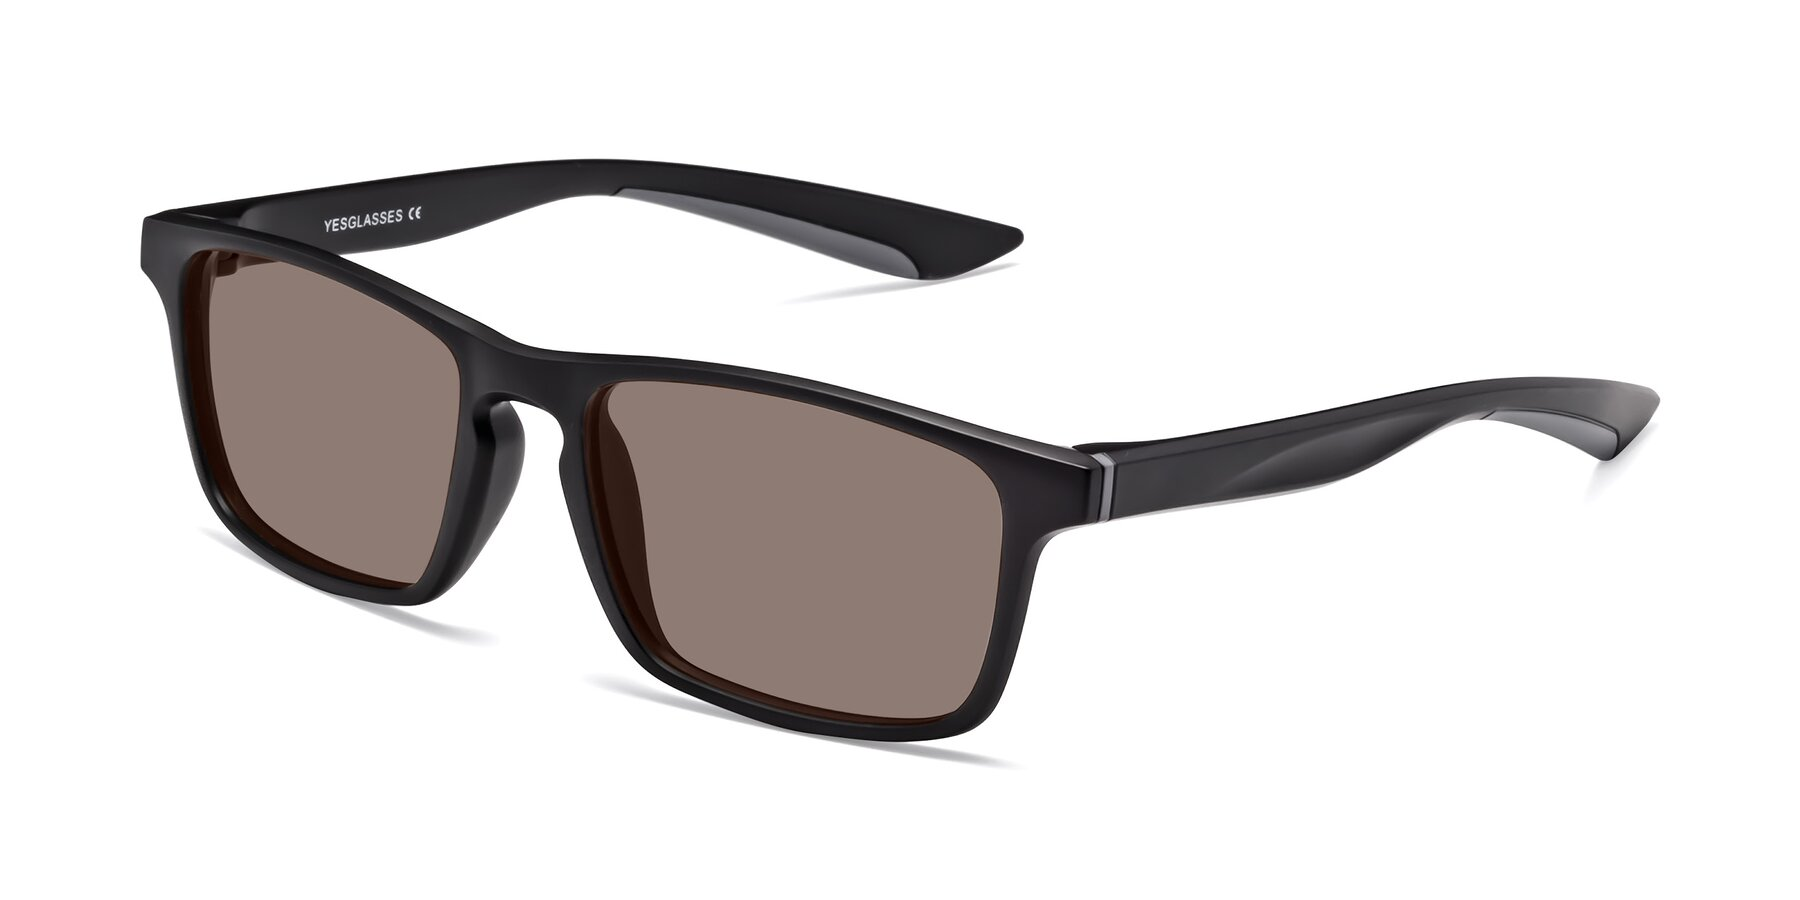 Angle of Passion in Matte Black-Gray with Medium Brown Tinted Lenses